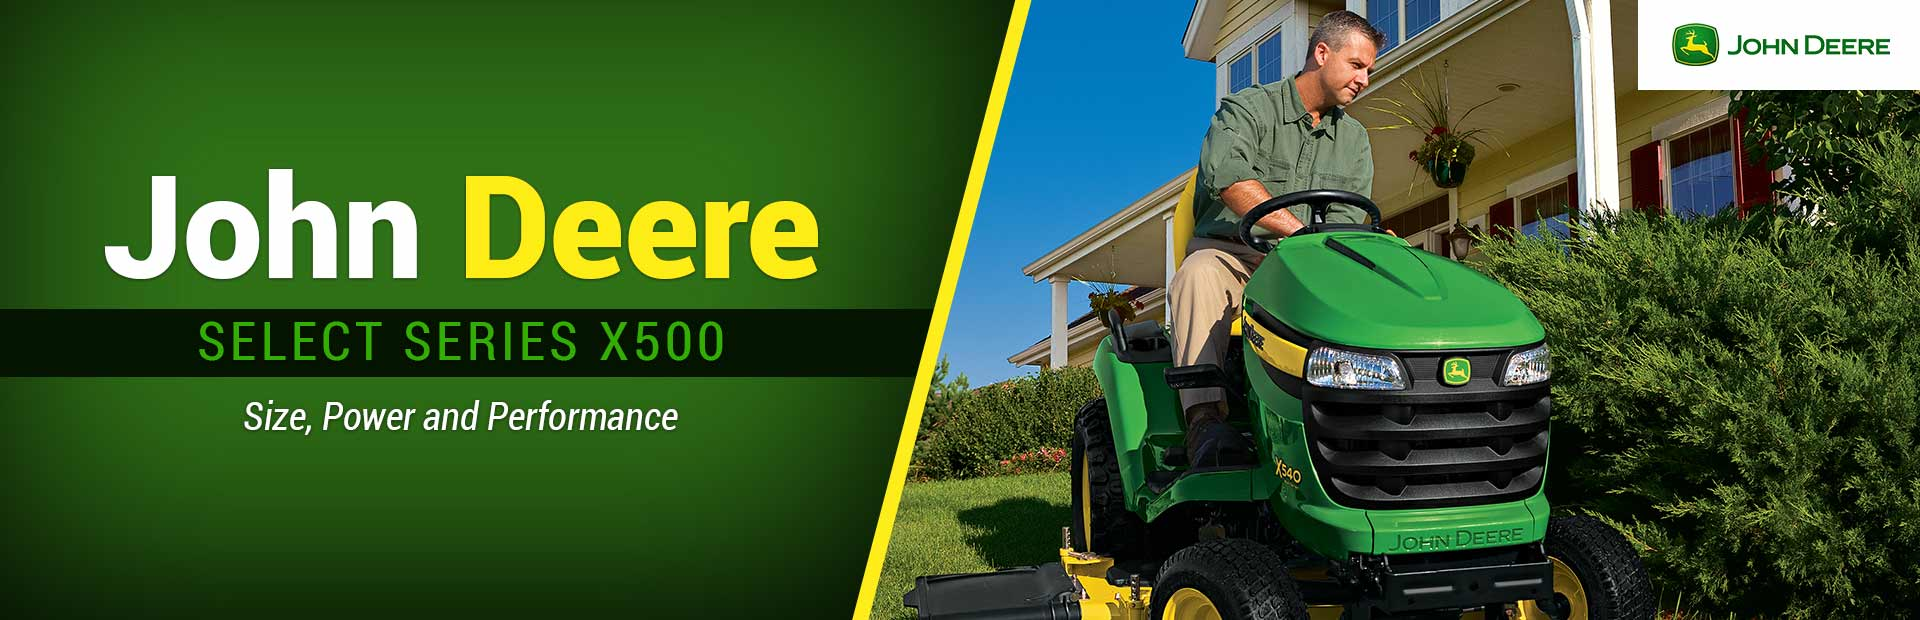 John Deere Select Series X500: Click here to view the models.